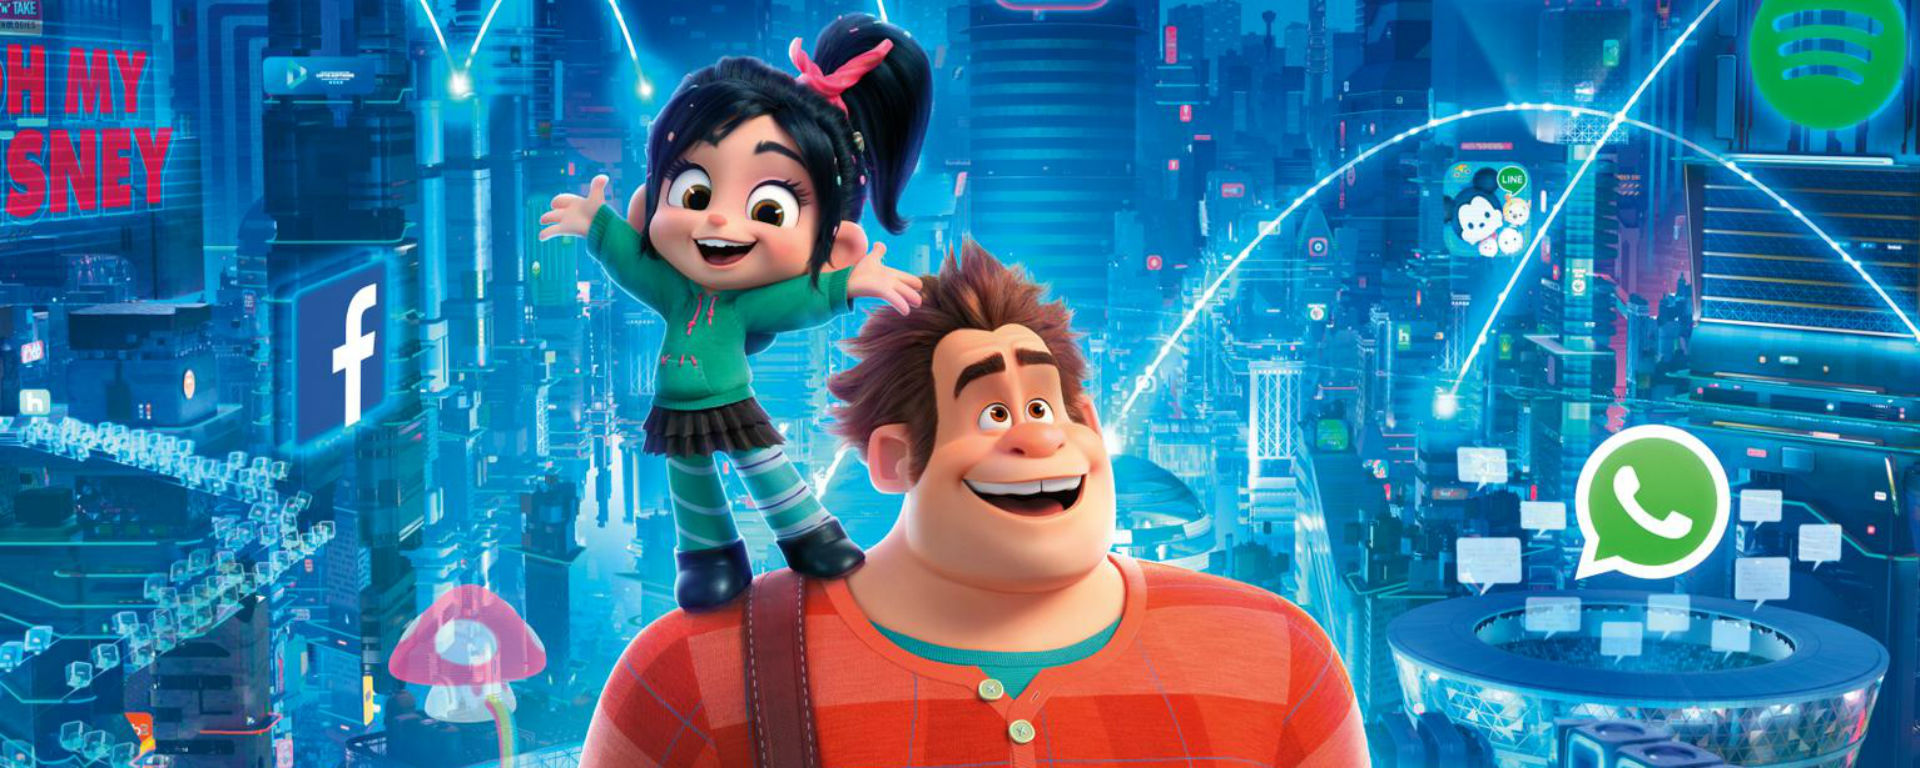 disney ralph breaks the internet movie review feature image